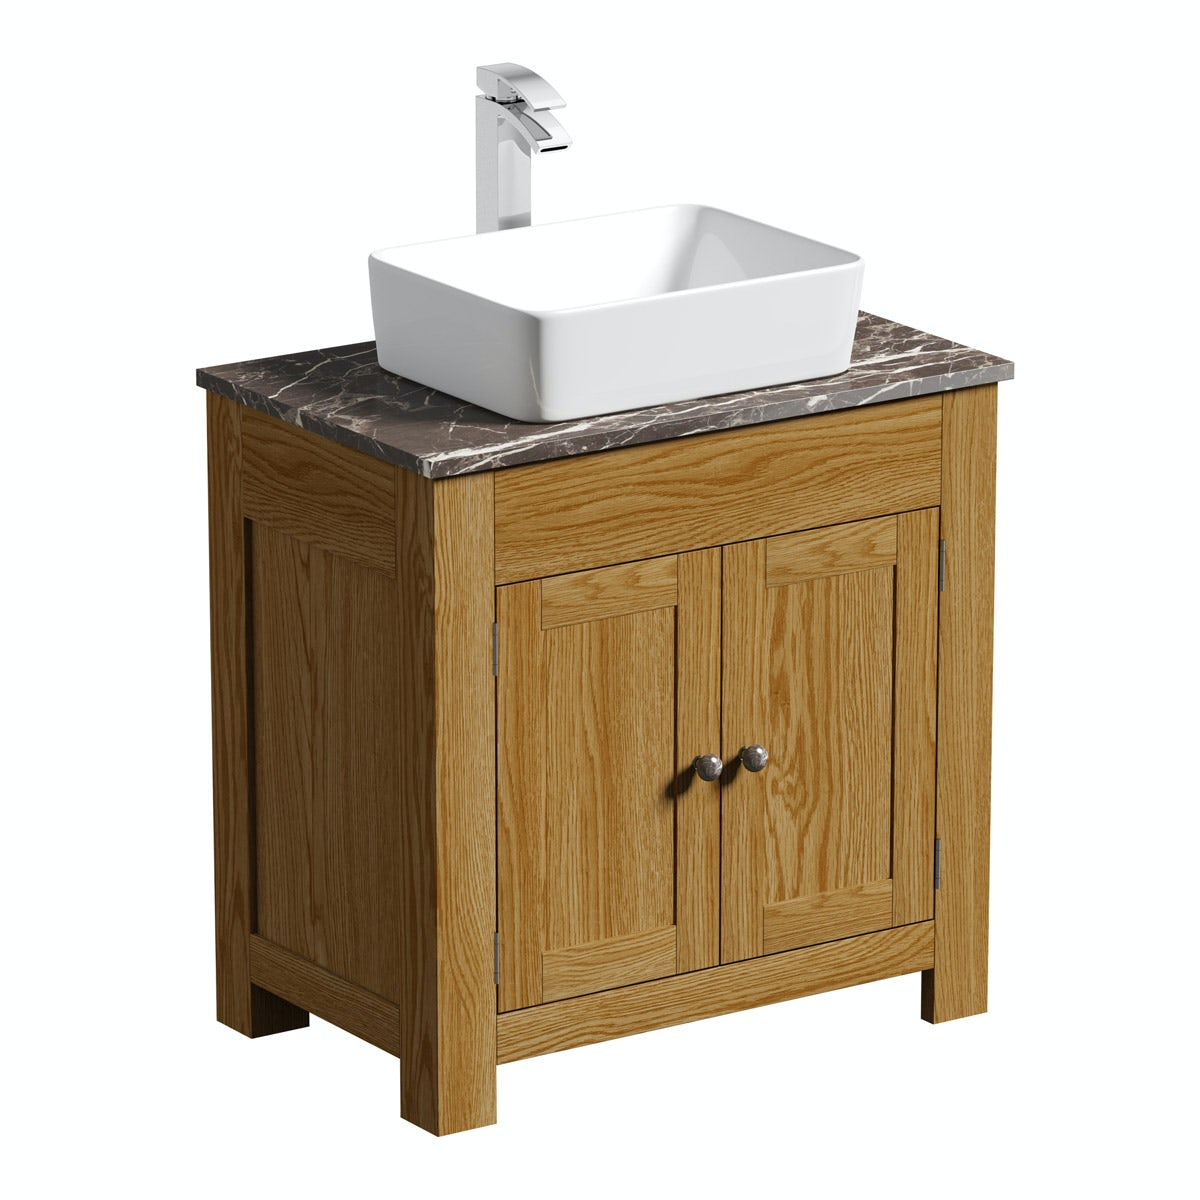 Marble Basin Countertop The Bath Co Chester Oak Washstand With Brown Marble Top